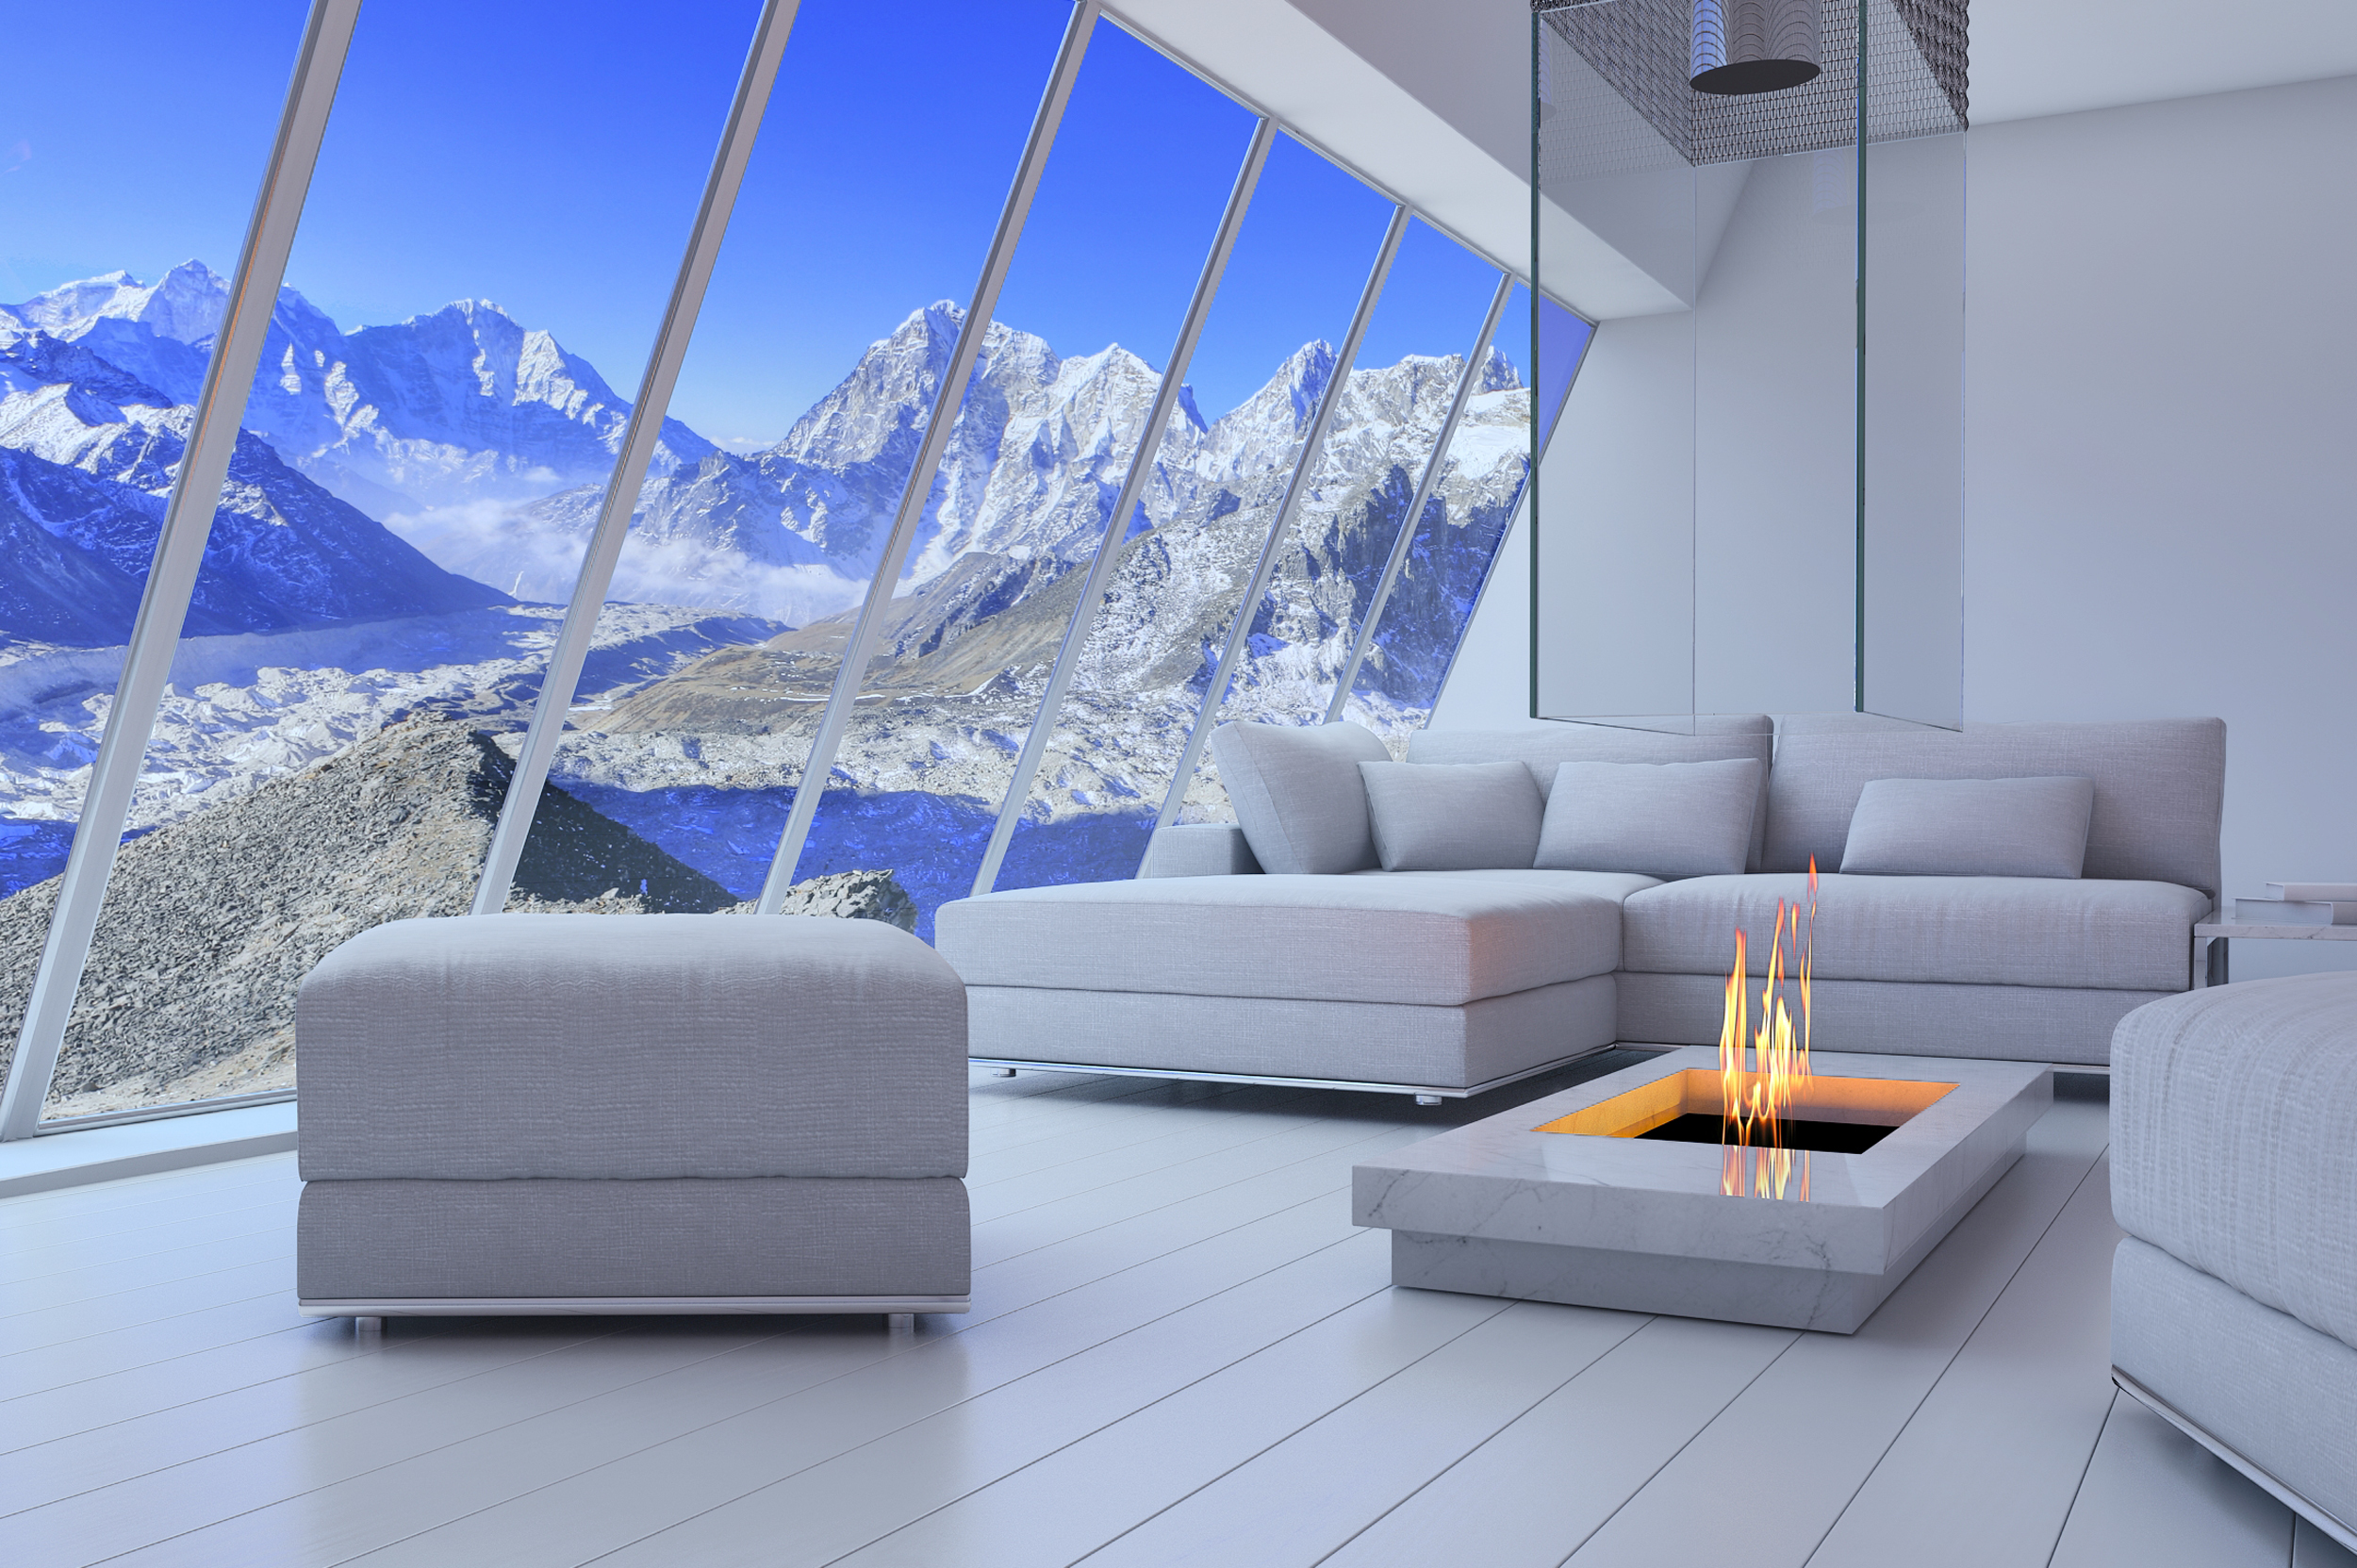 White 3D interior room with fireplace an